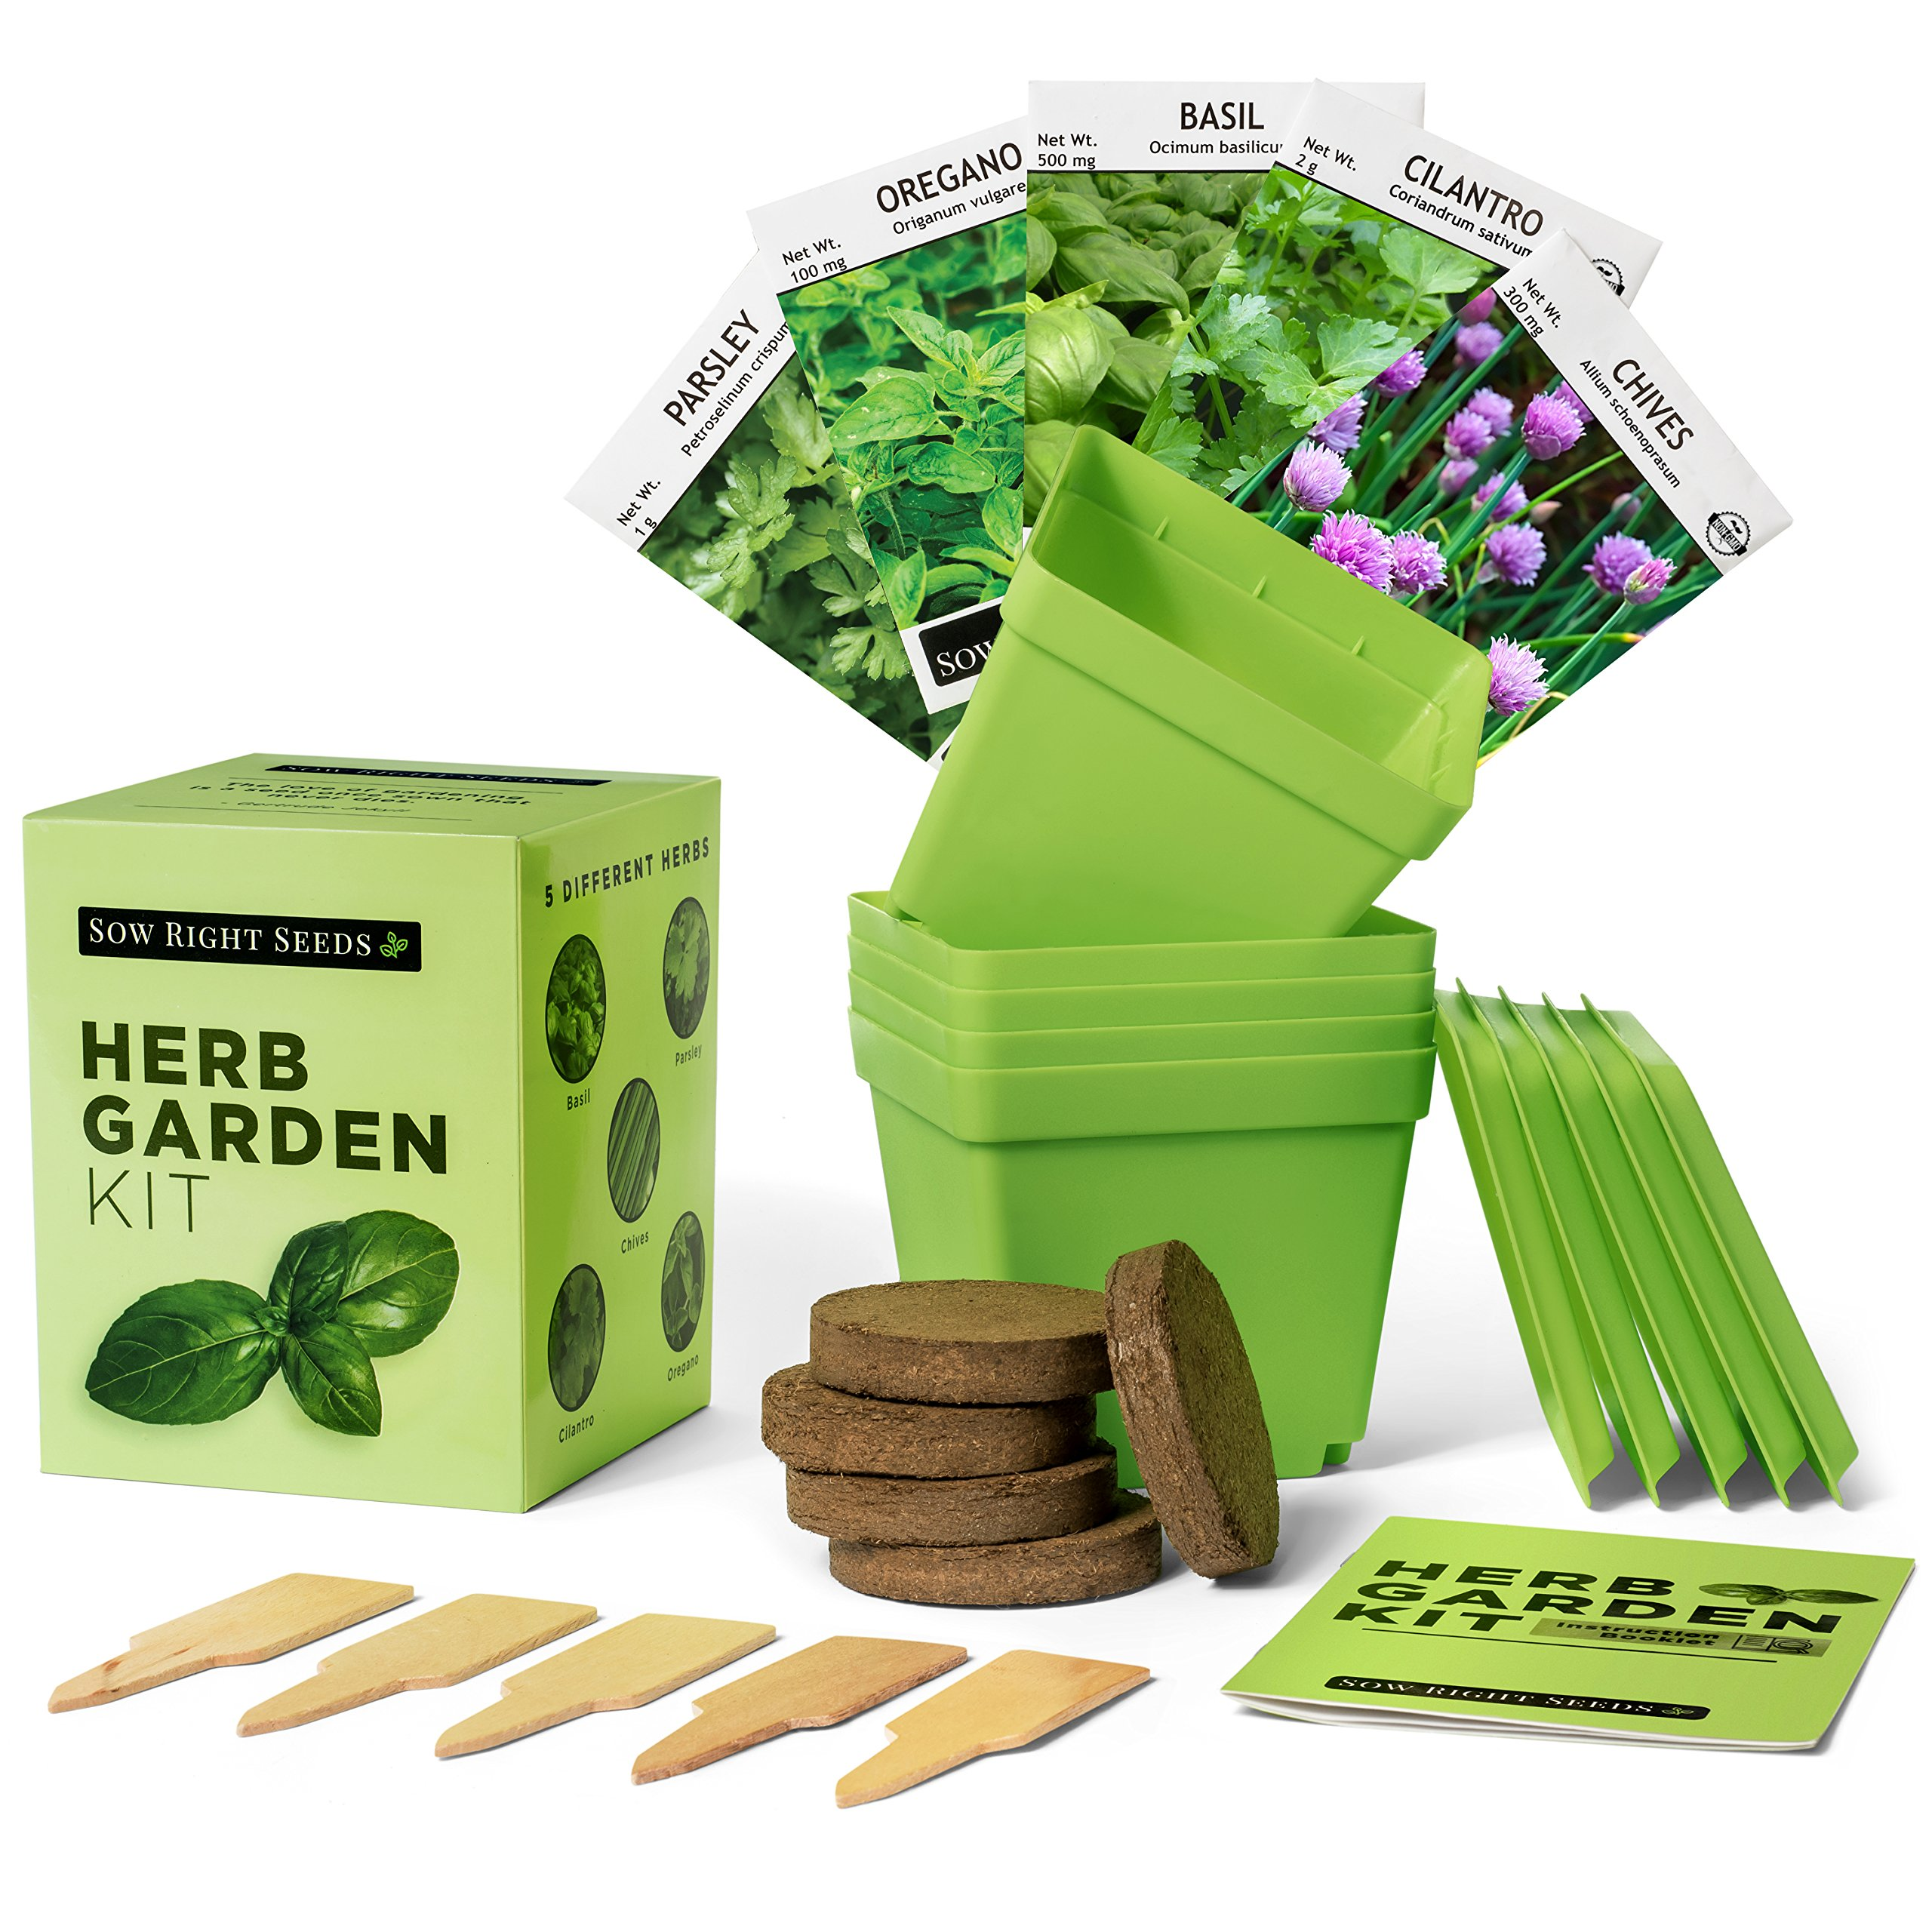 Indoor Herb Garden Starter Kit - Full Size Seed Packets of Basil, Chives, Cilantro, Oregano & Parsley - Everything You Need to Grow Herbs in Your Kitchen - Soil, Reusable Pots, Trays, Plant Markers, by Right Hardware (Image #1)